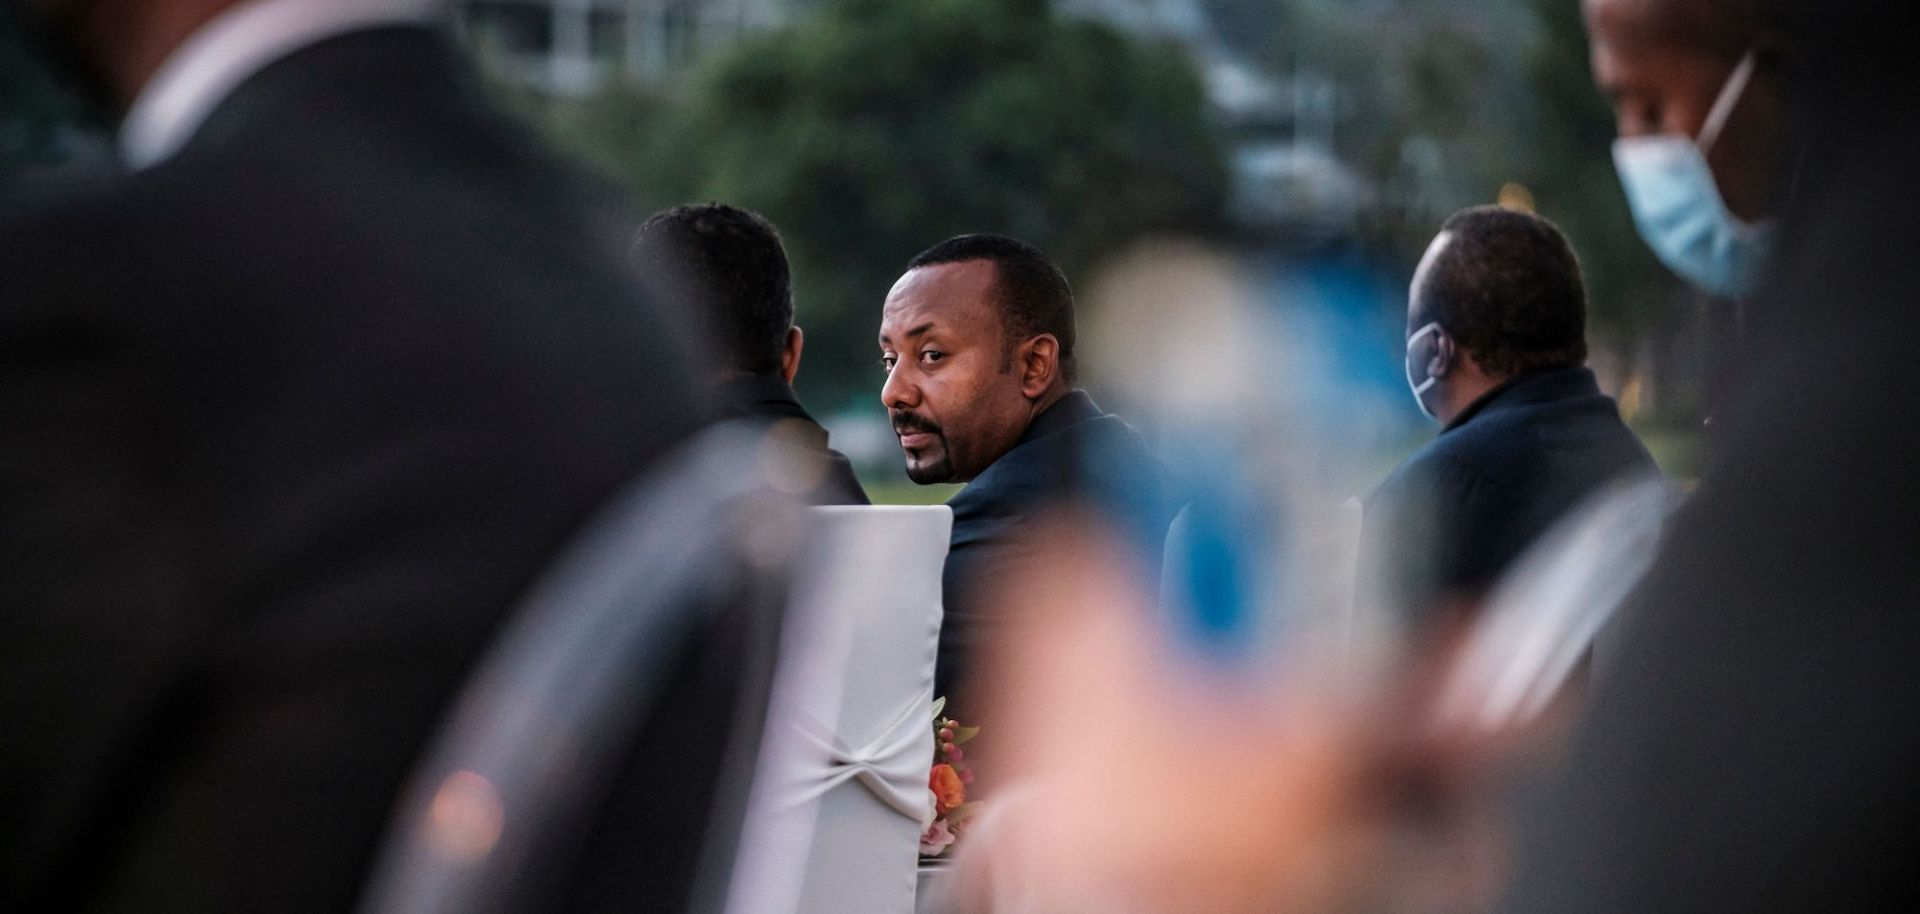 Ethiopian Prime Minister Abiy Ahmed is seen at a ceremony for the signing of a telecom licensing agreement on June 8, 2021.